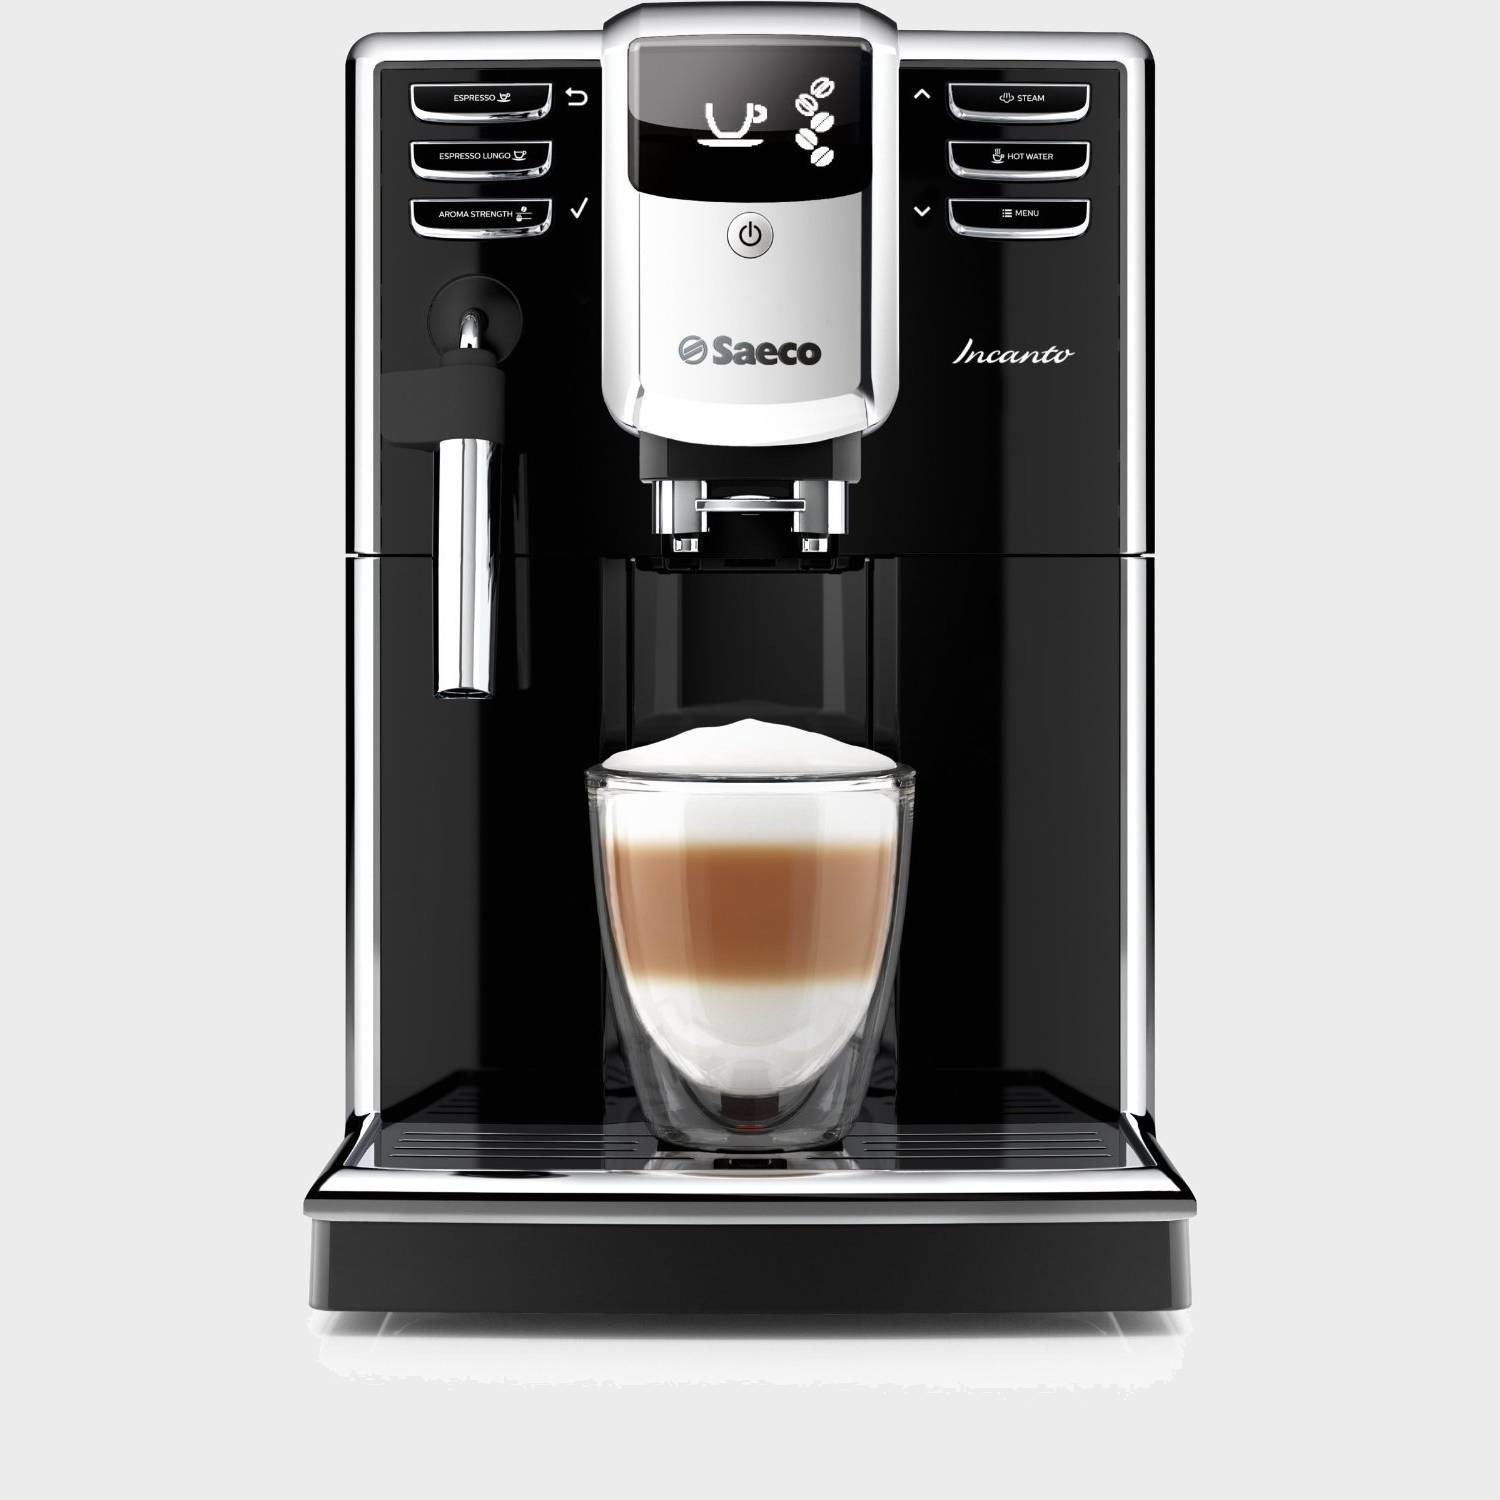 Philips Hd-8911/01 cafetera superautomatica